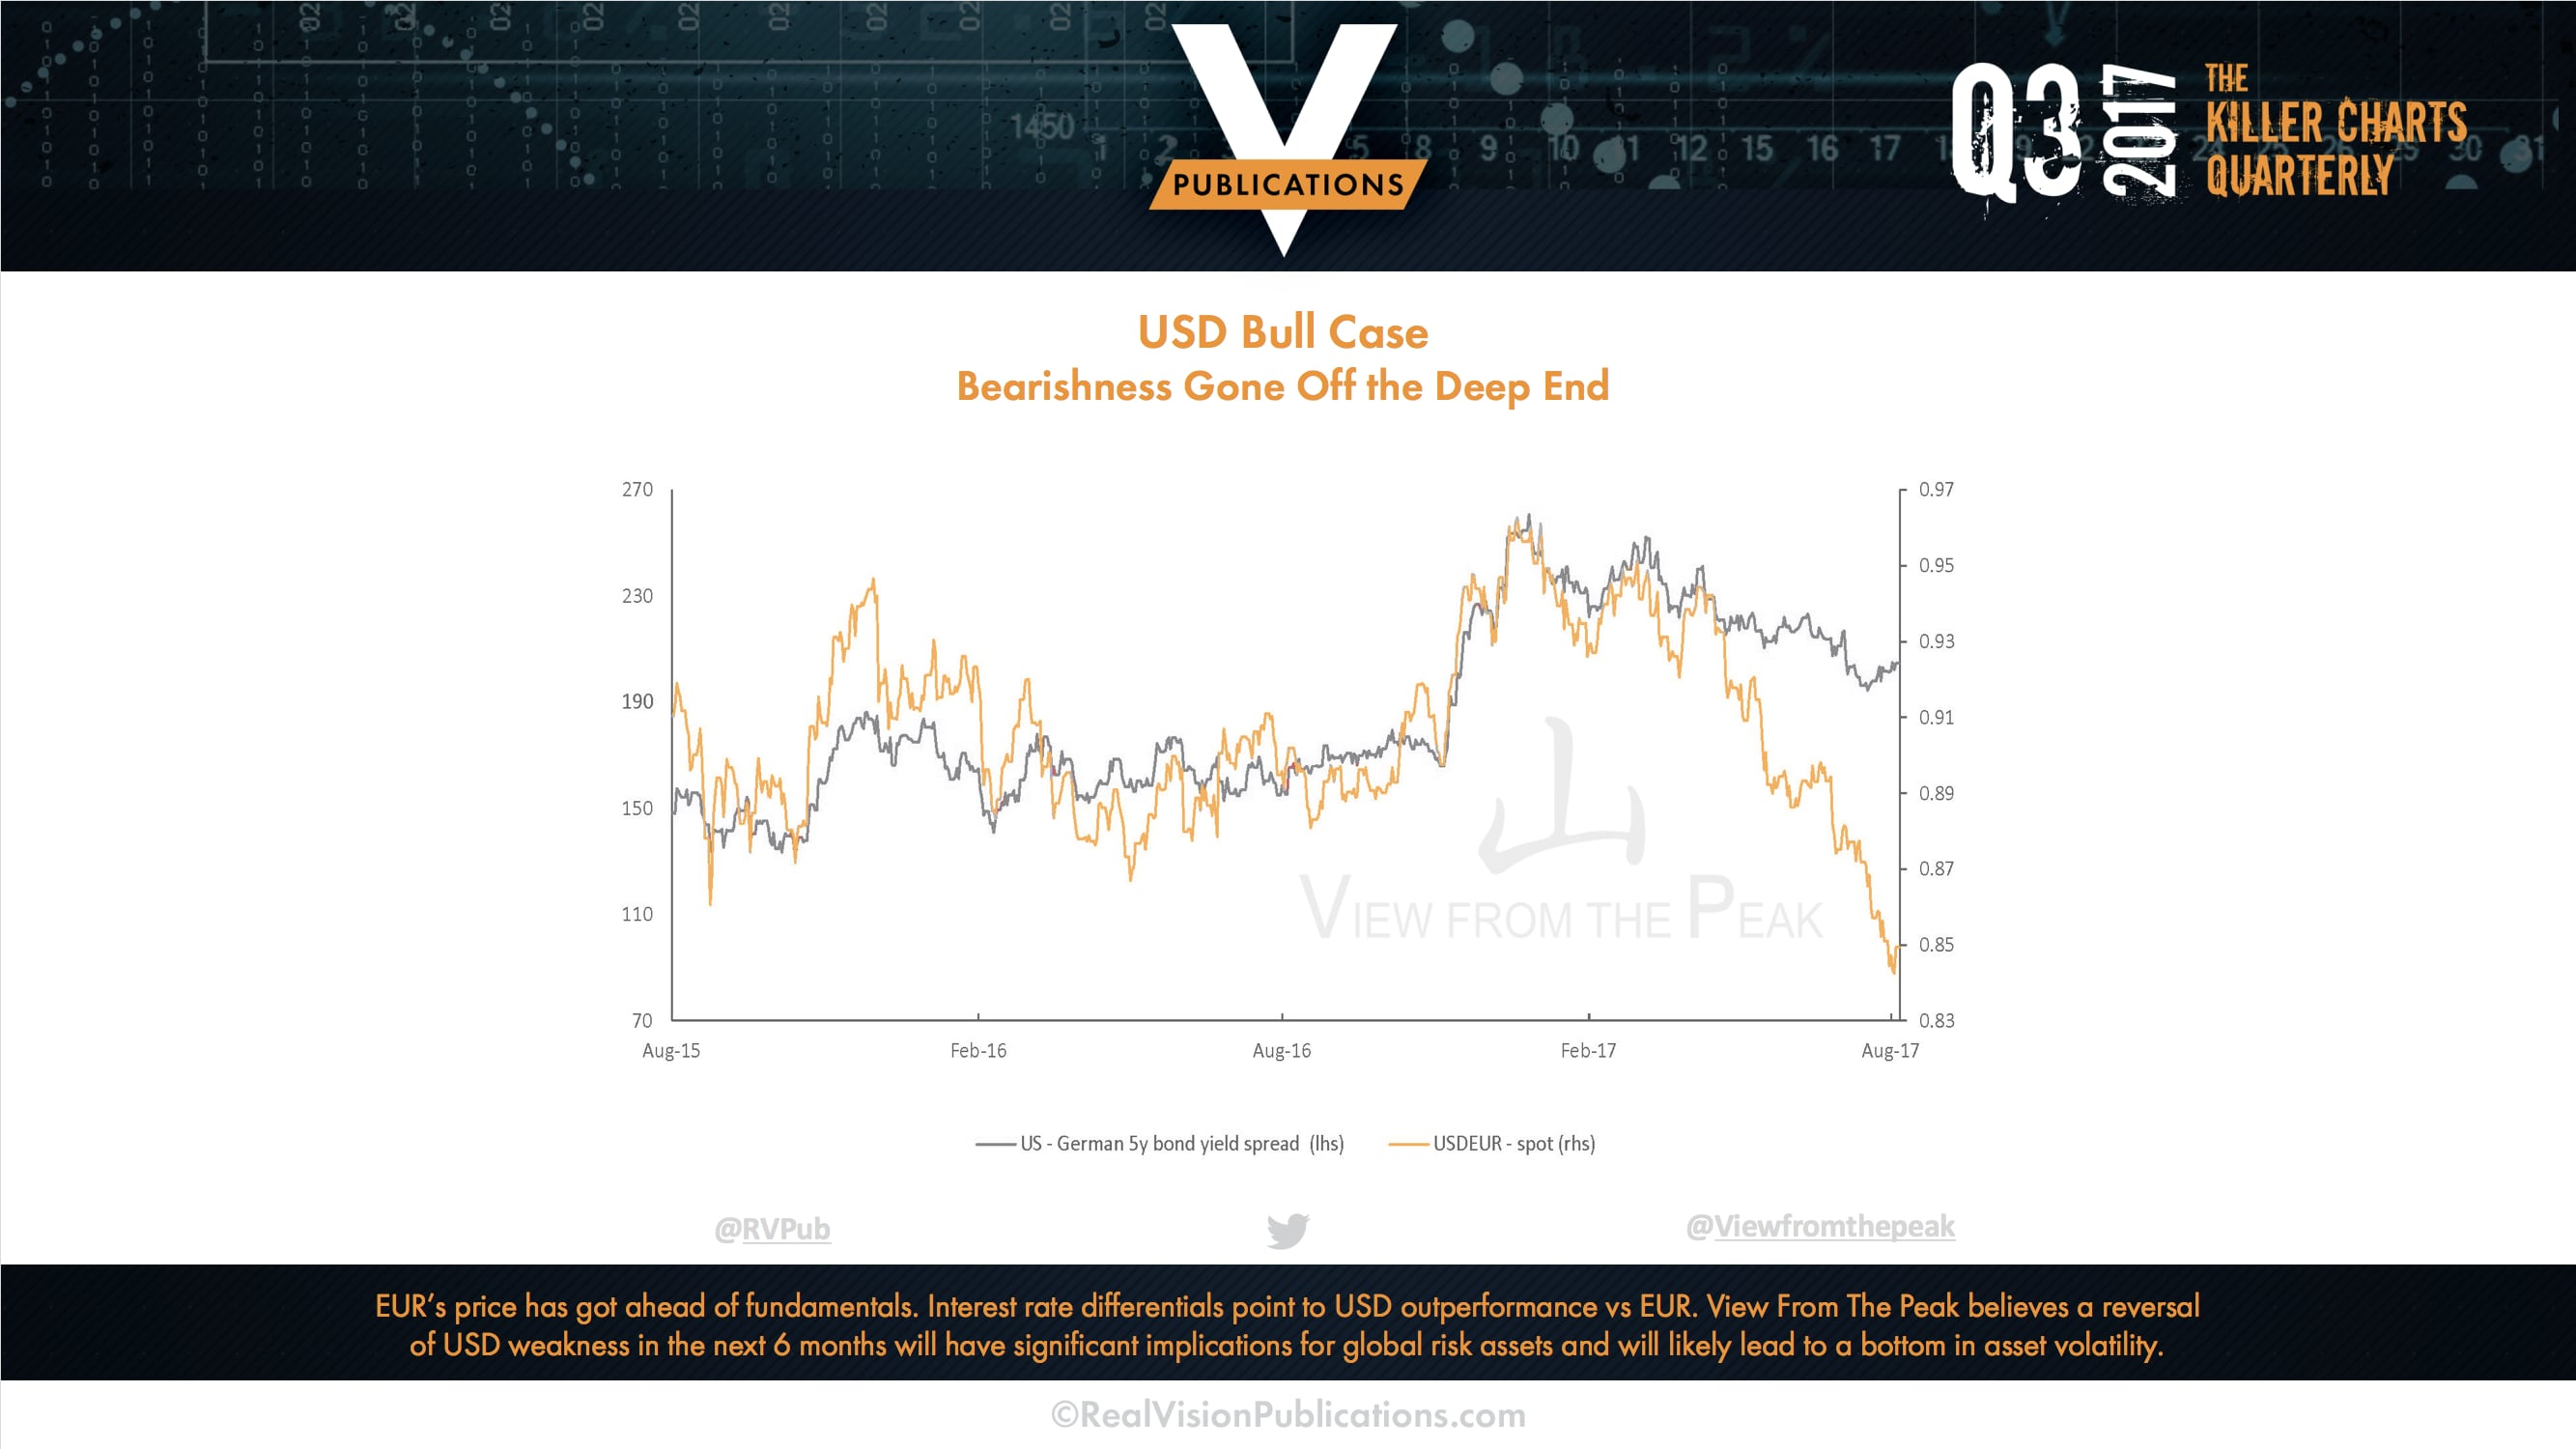 View from the Peak - Killer Charts from Real Vision Publications